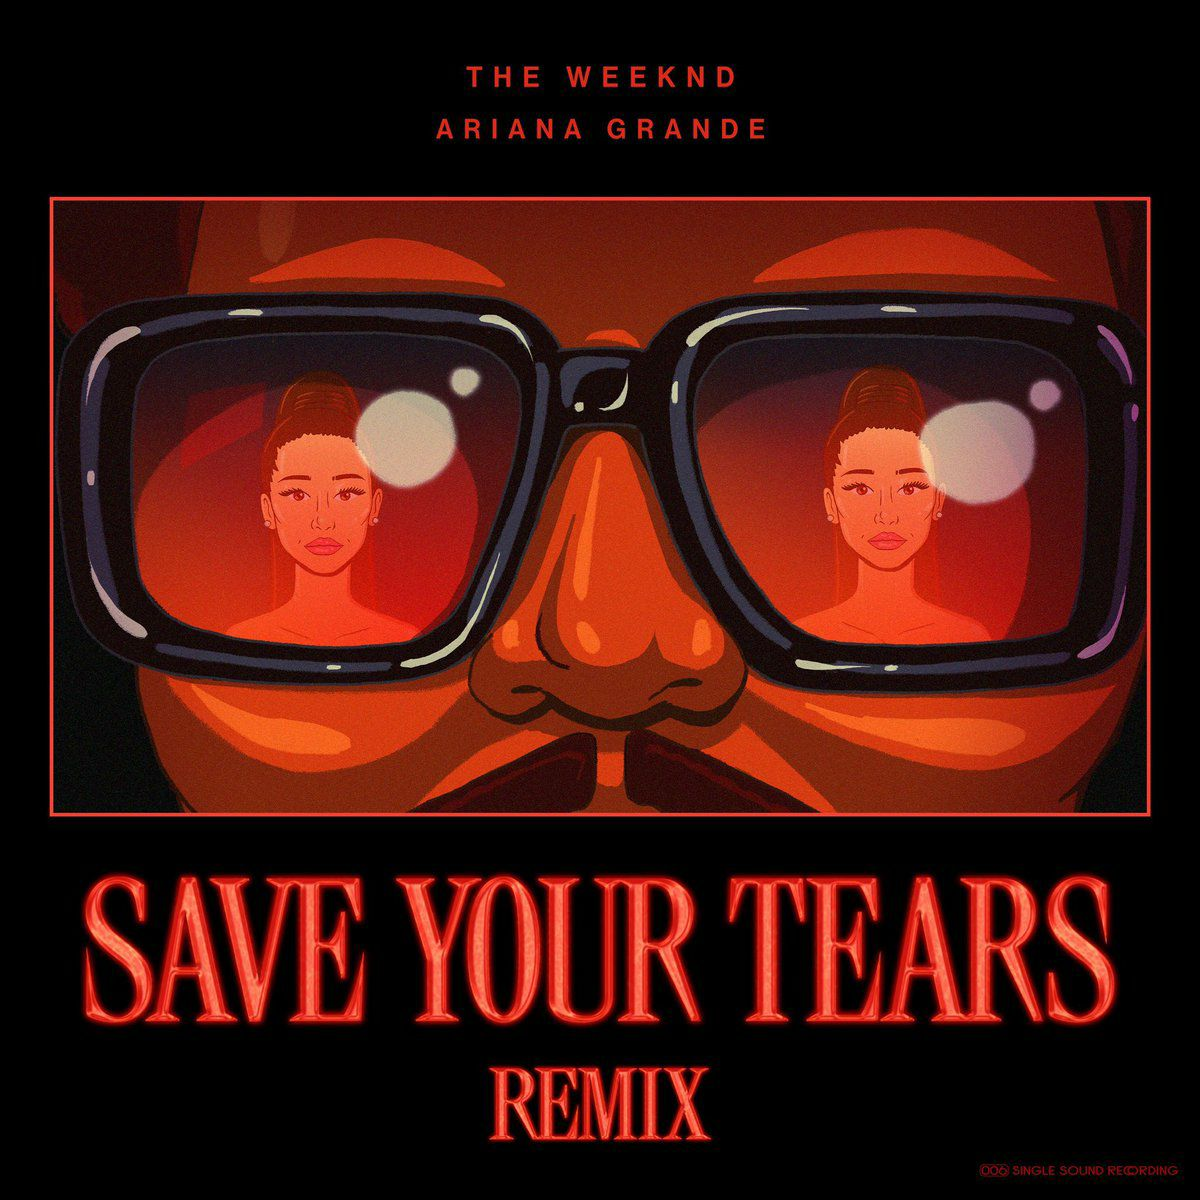 The-weeknd-save-your-tears remix